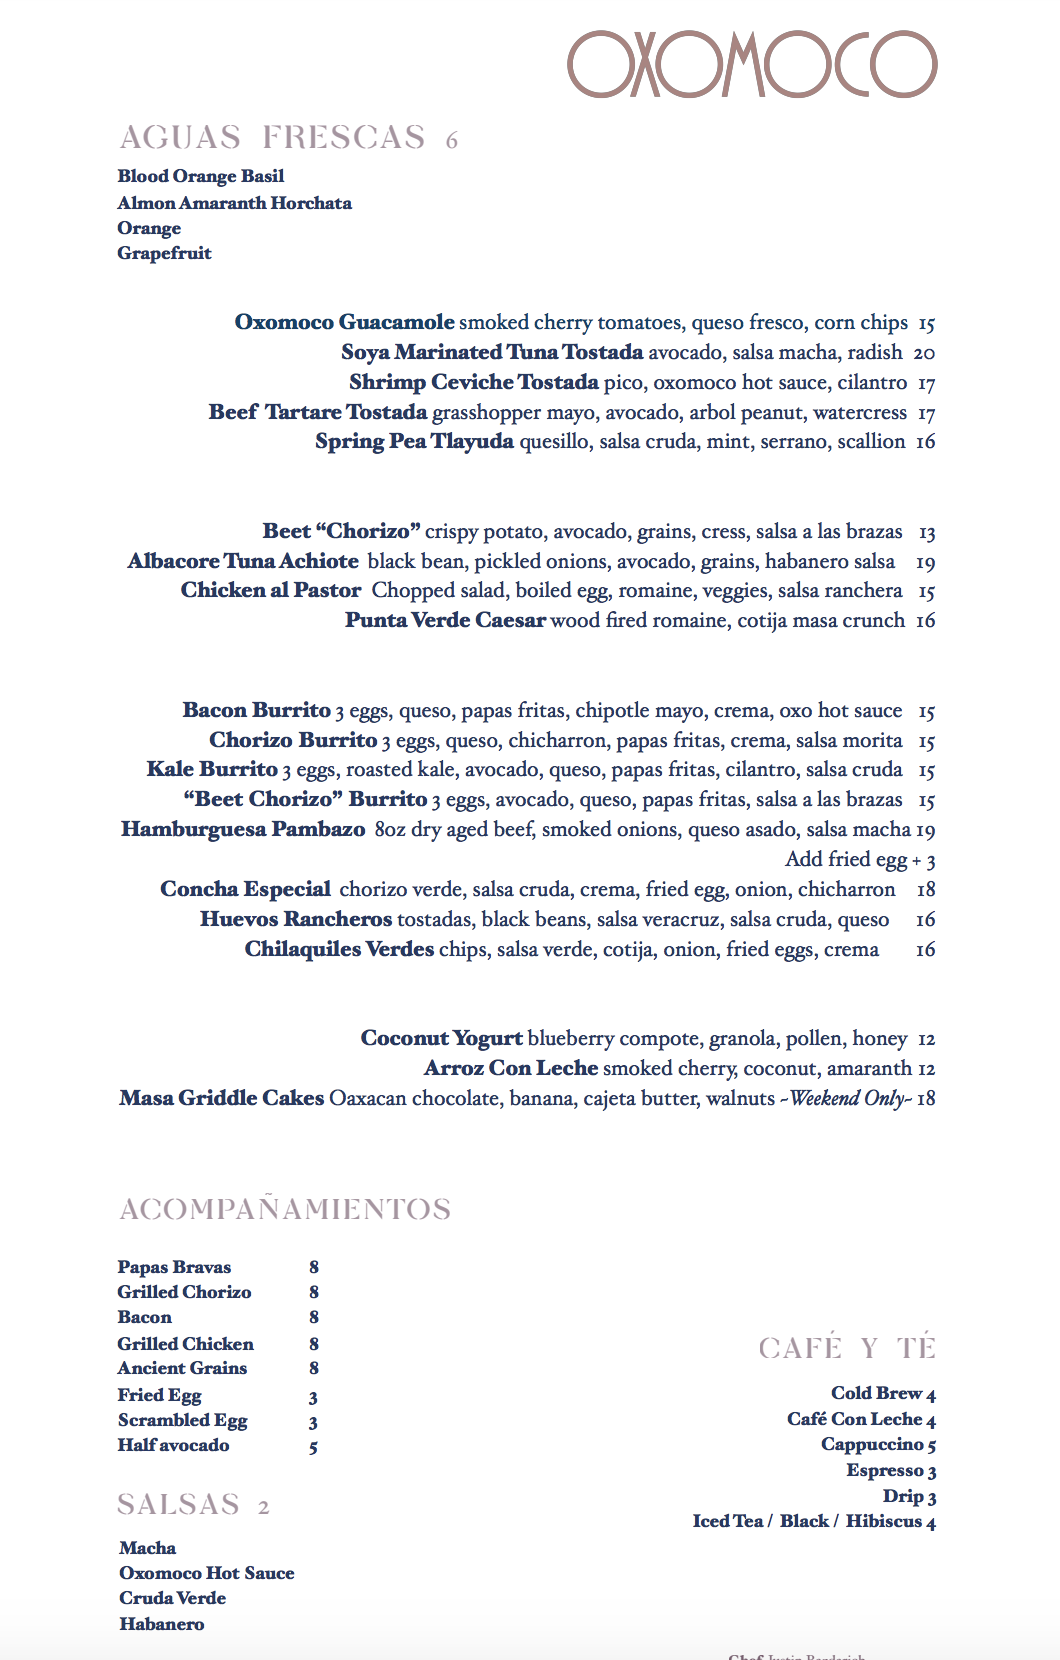 Oxomoco's Menu as of March 2019